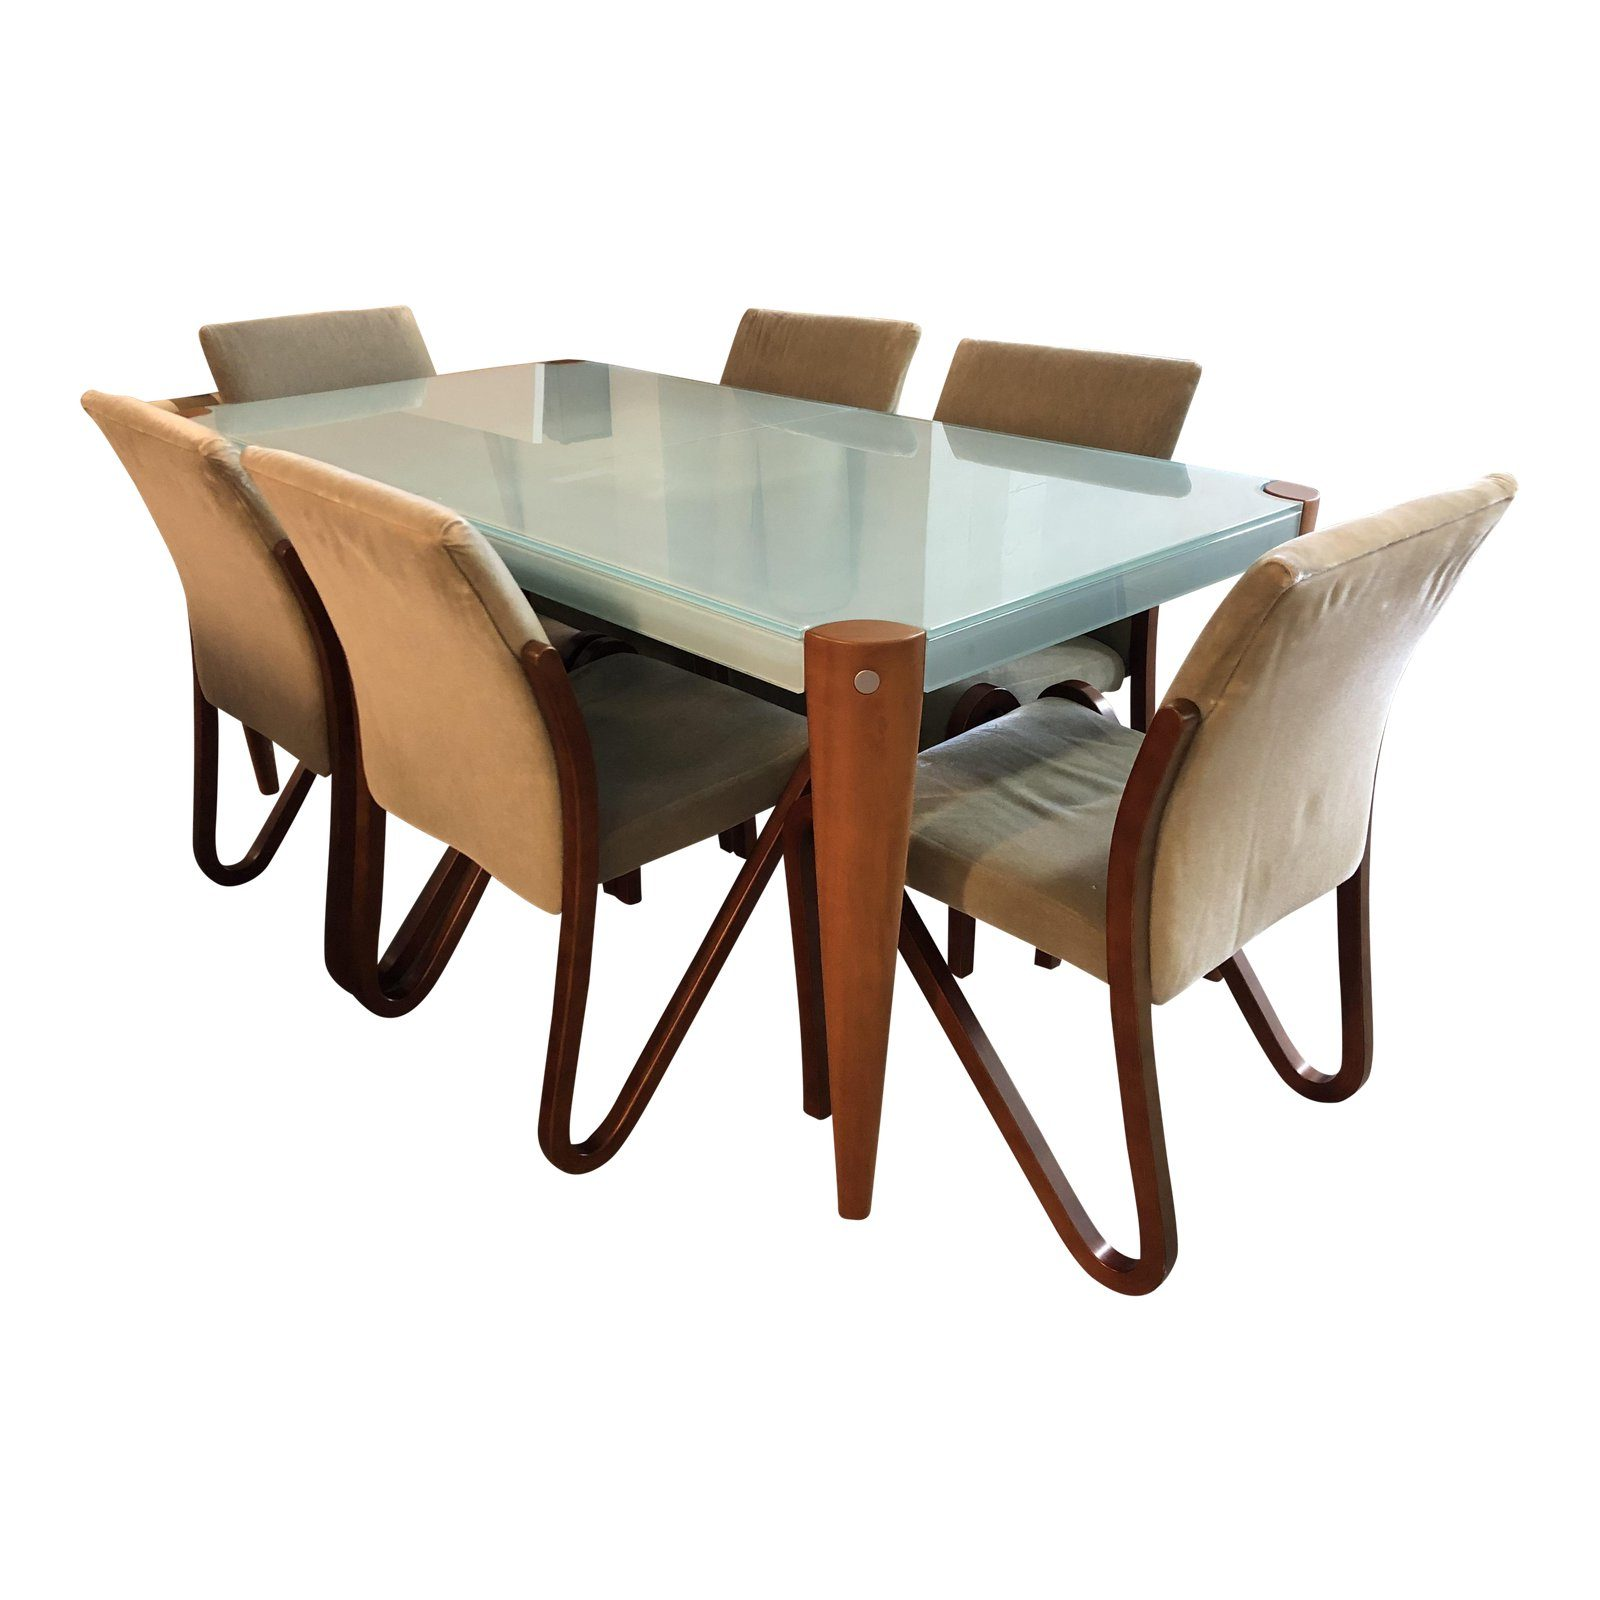 Graebel Glass Cherry Wood Butterfly Leaf Dining Table Six Chairs